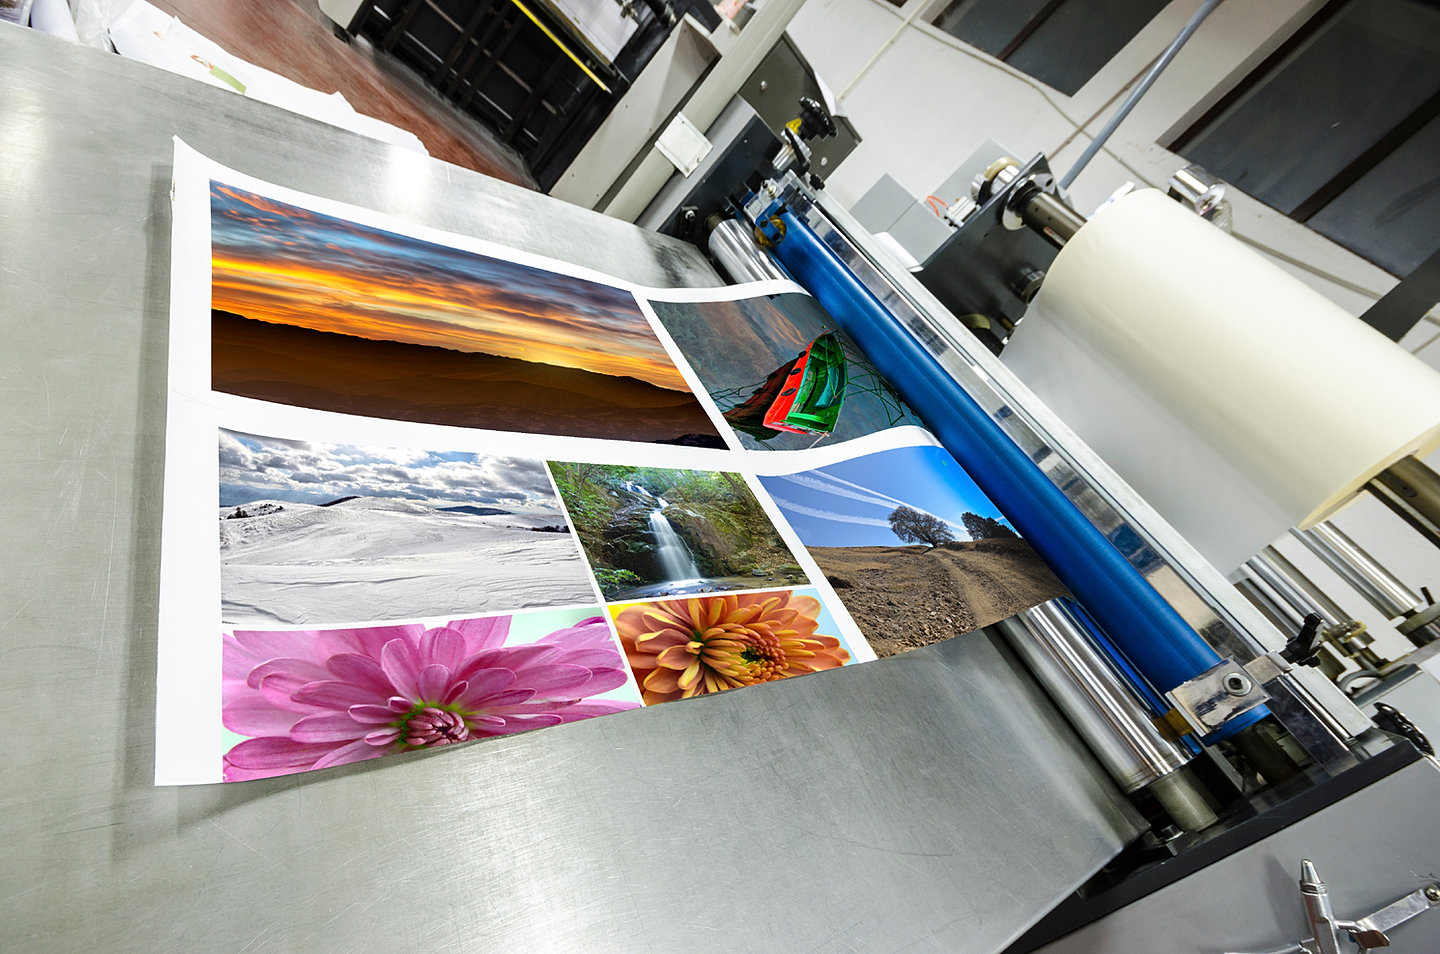 Shirt design dallas tx - Established In 1994 Colorworks Printing Is A Family Owned And Operated Business Located In Richardson Texas We Offer Full Service Printing And Sign